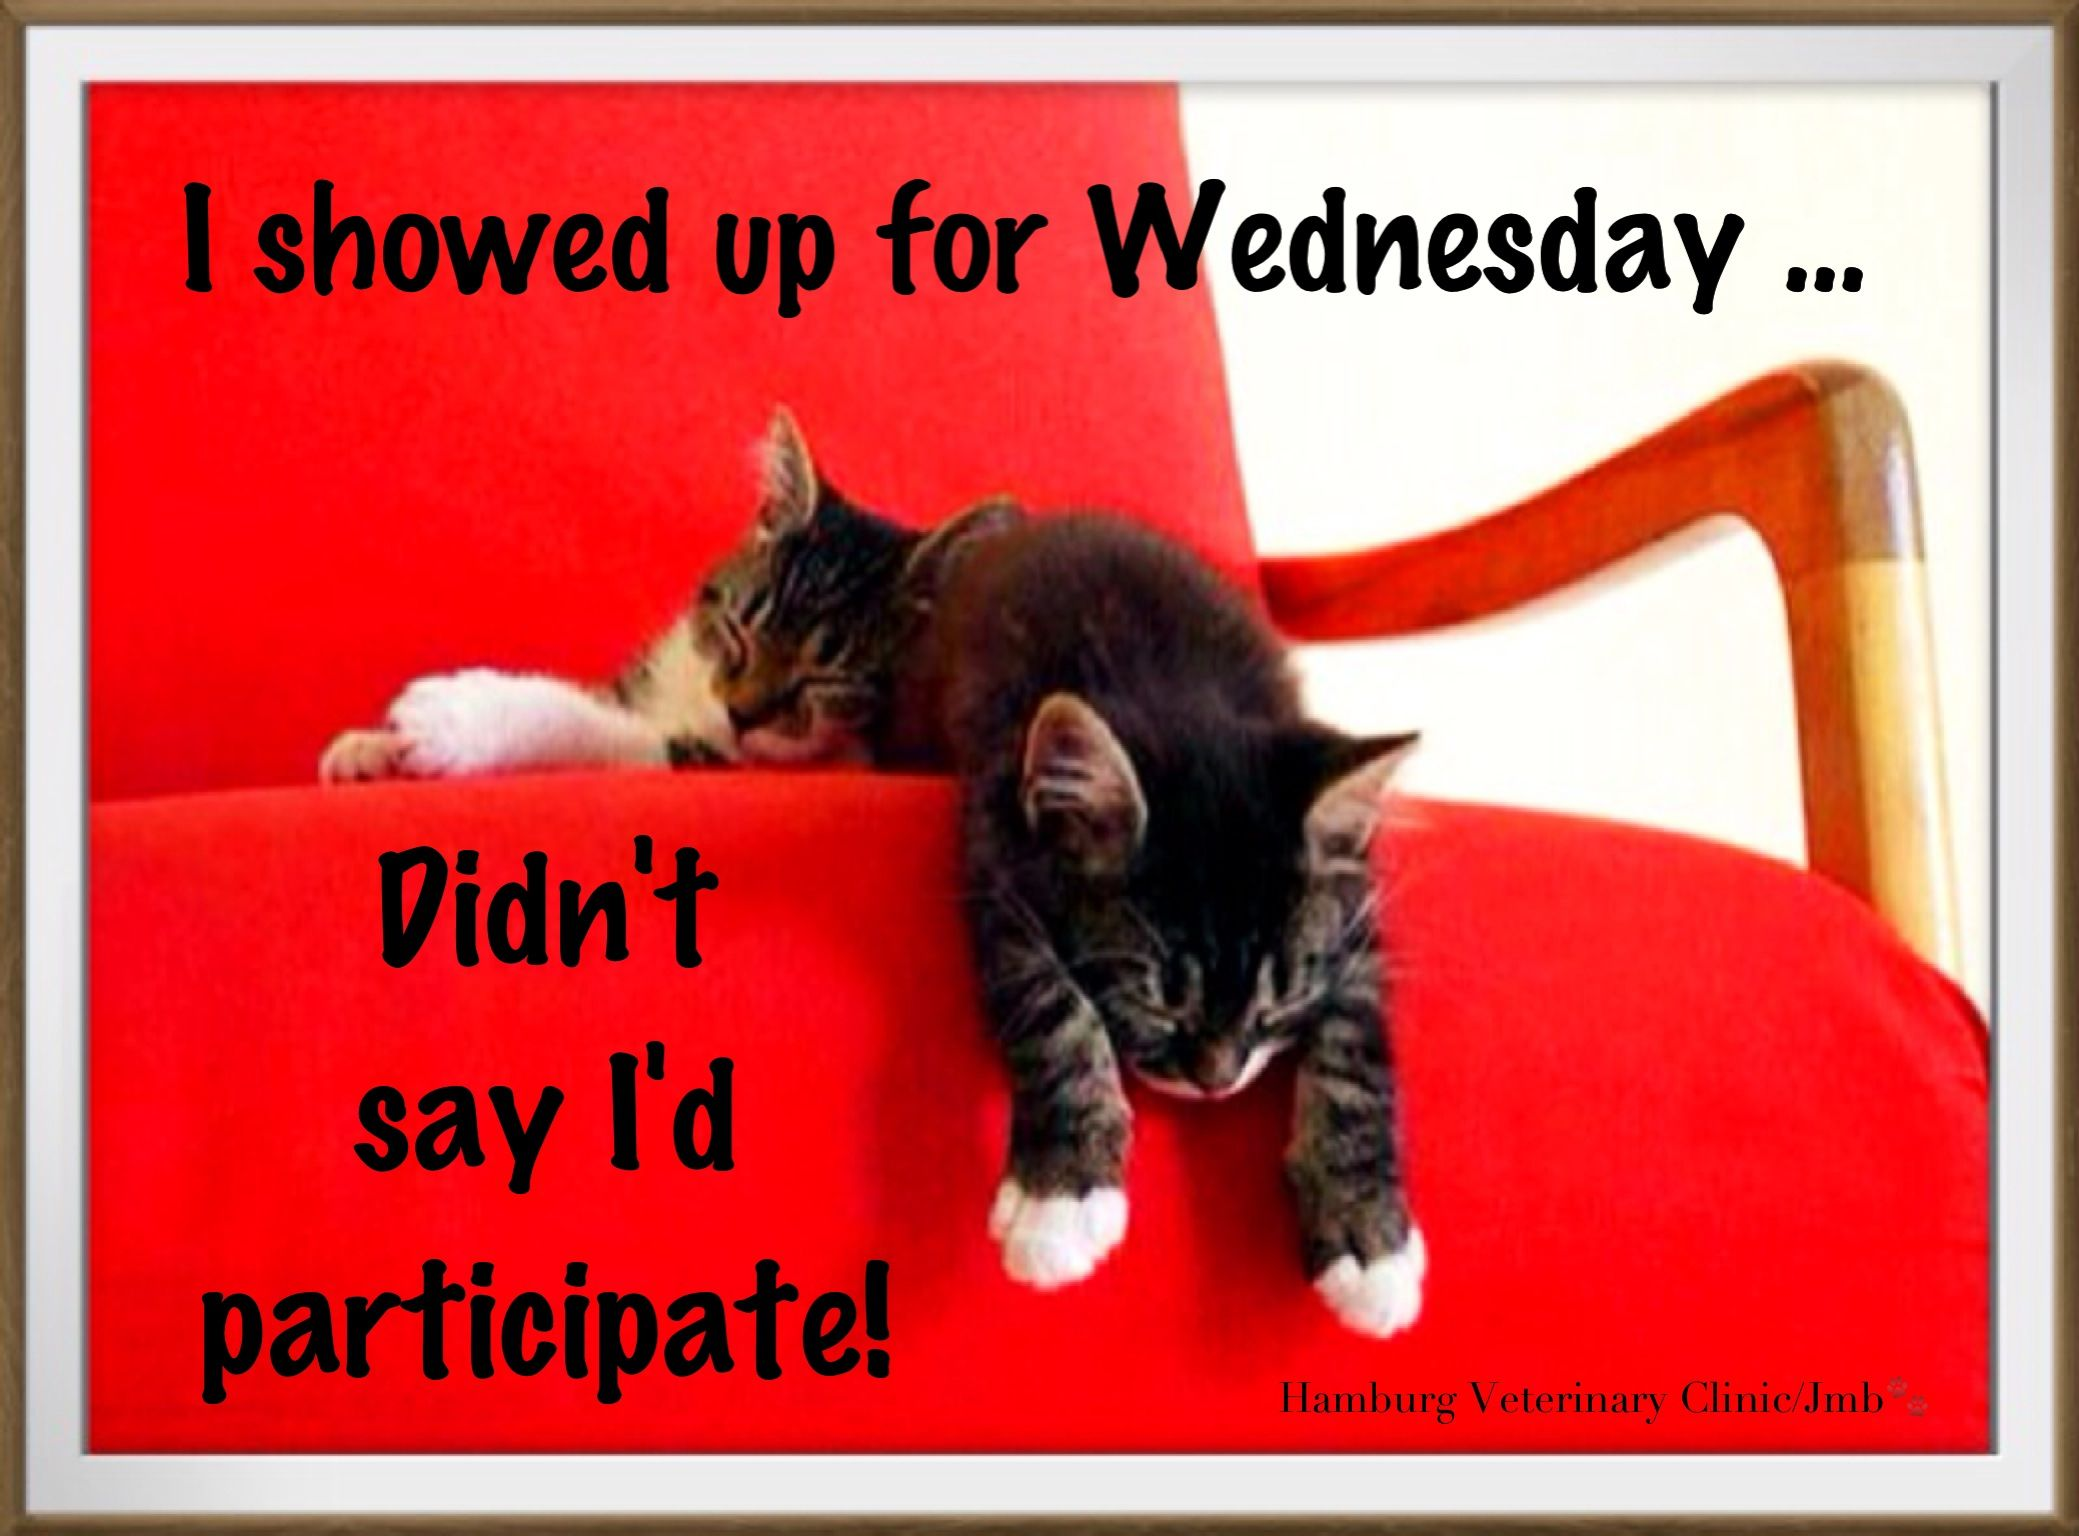 Wednesday humor Delightful wishes for a wonderful day